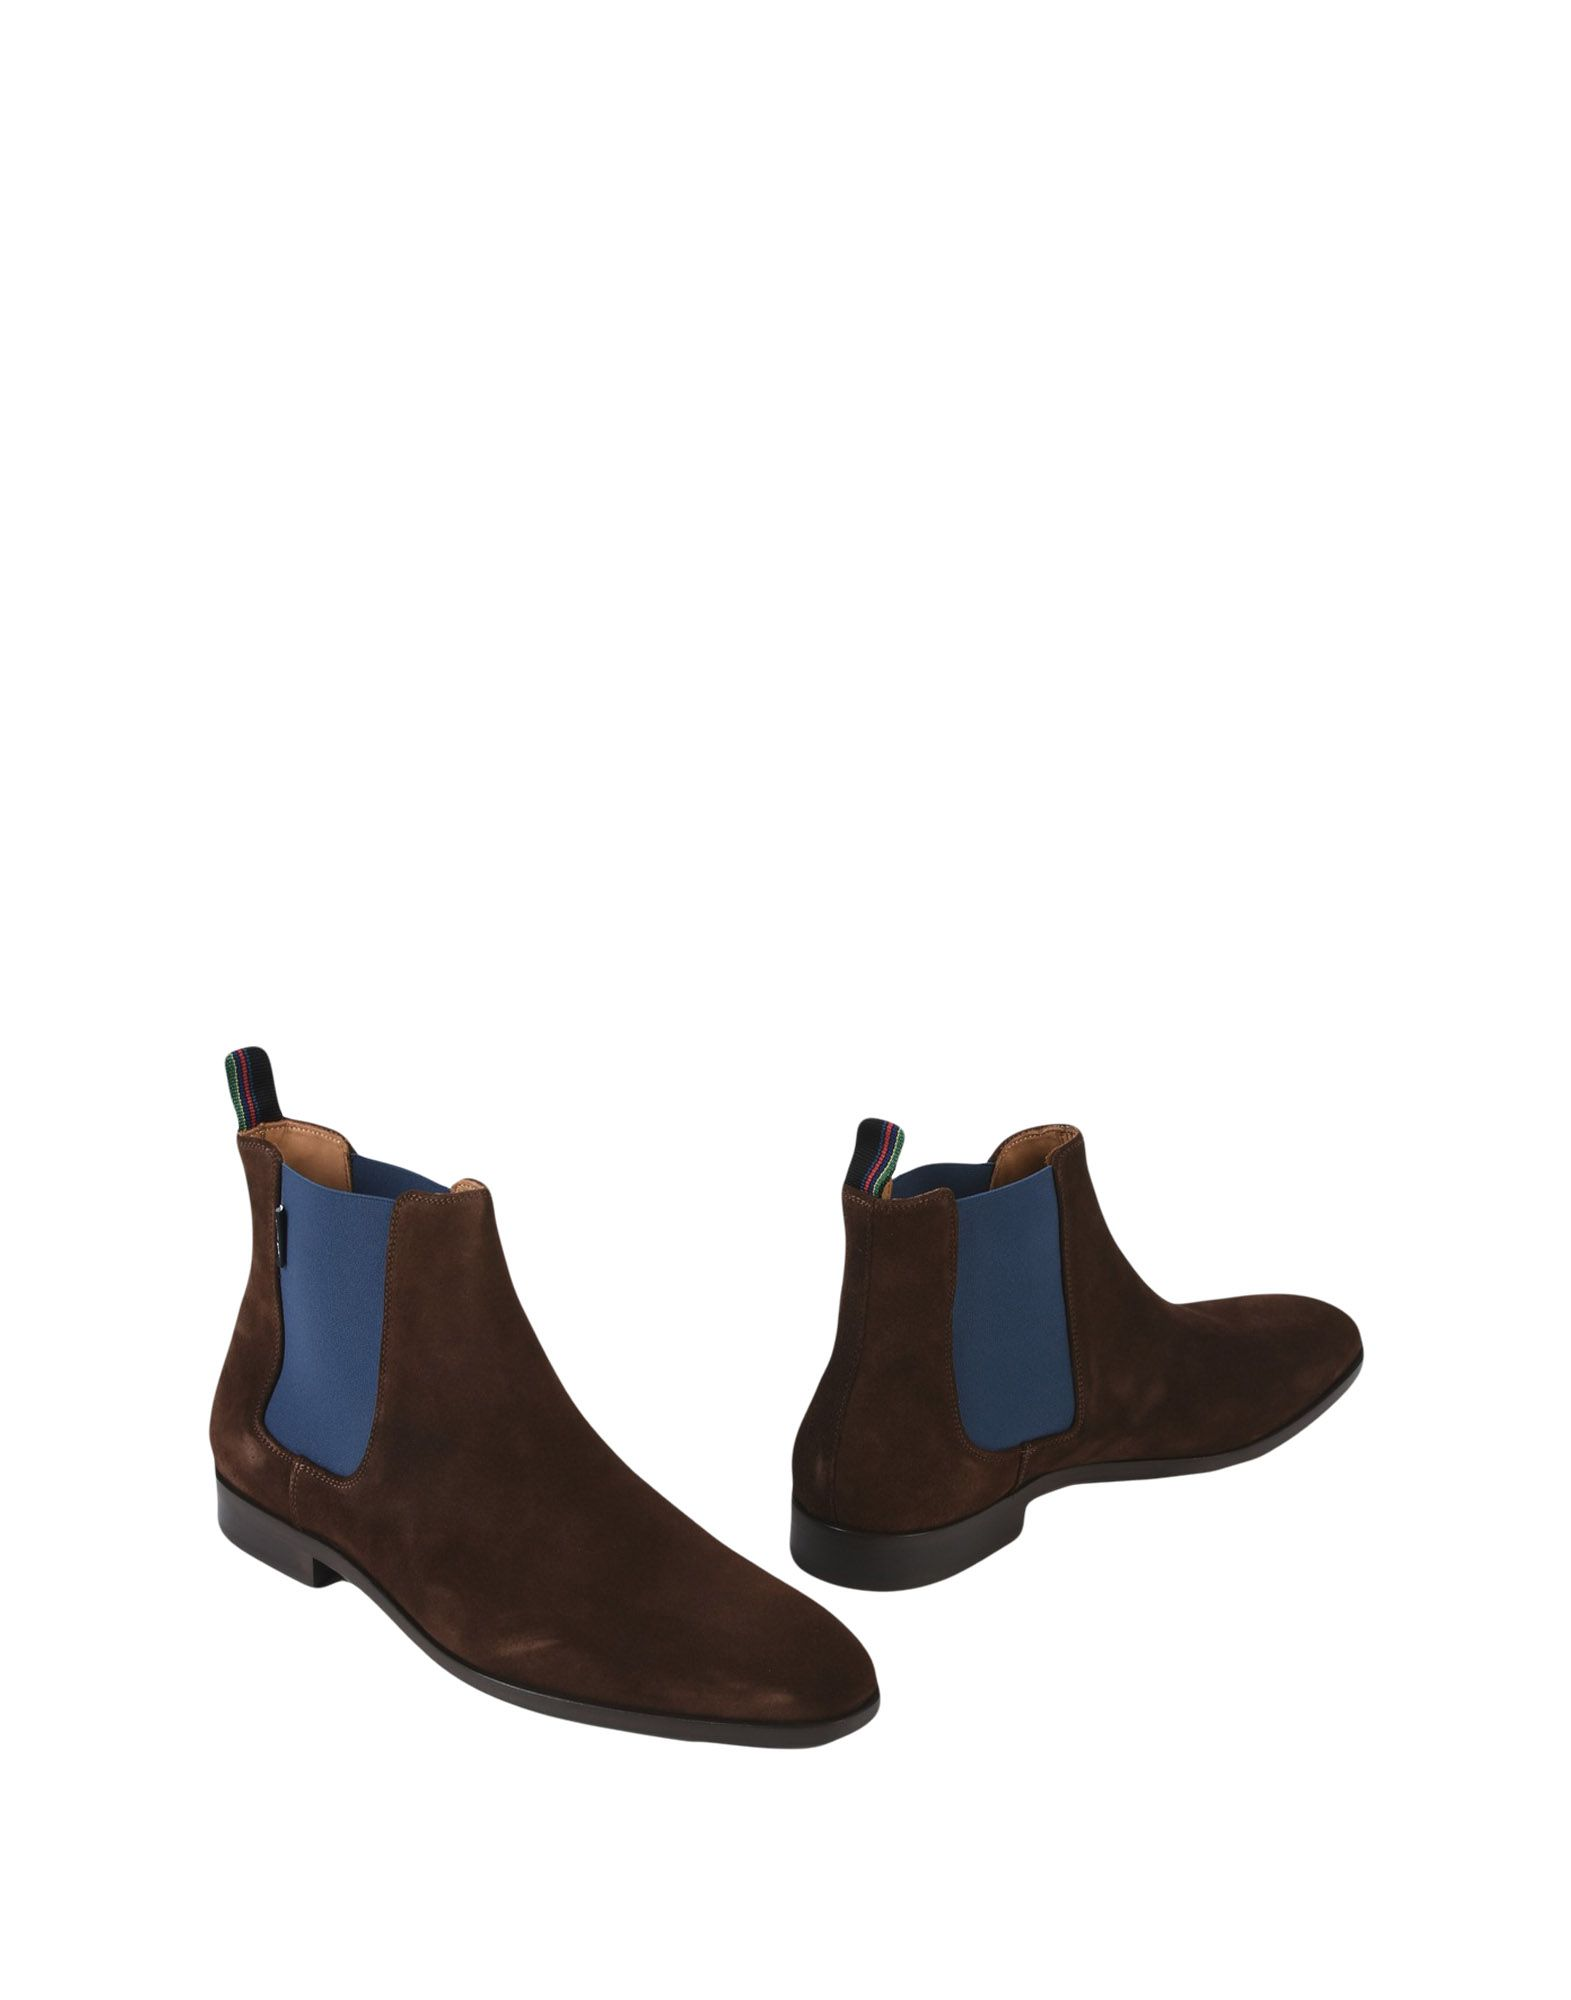 Ps By By By Paul Smith Boots - Men Ps By Paul Smith Boots online on  Australia - 11503636TL 01acee